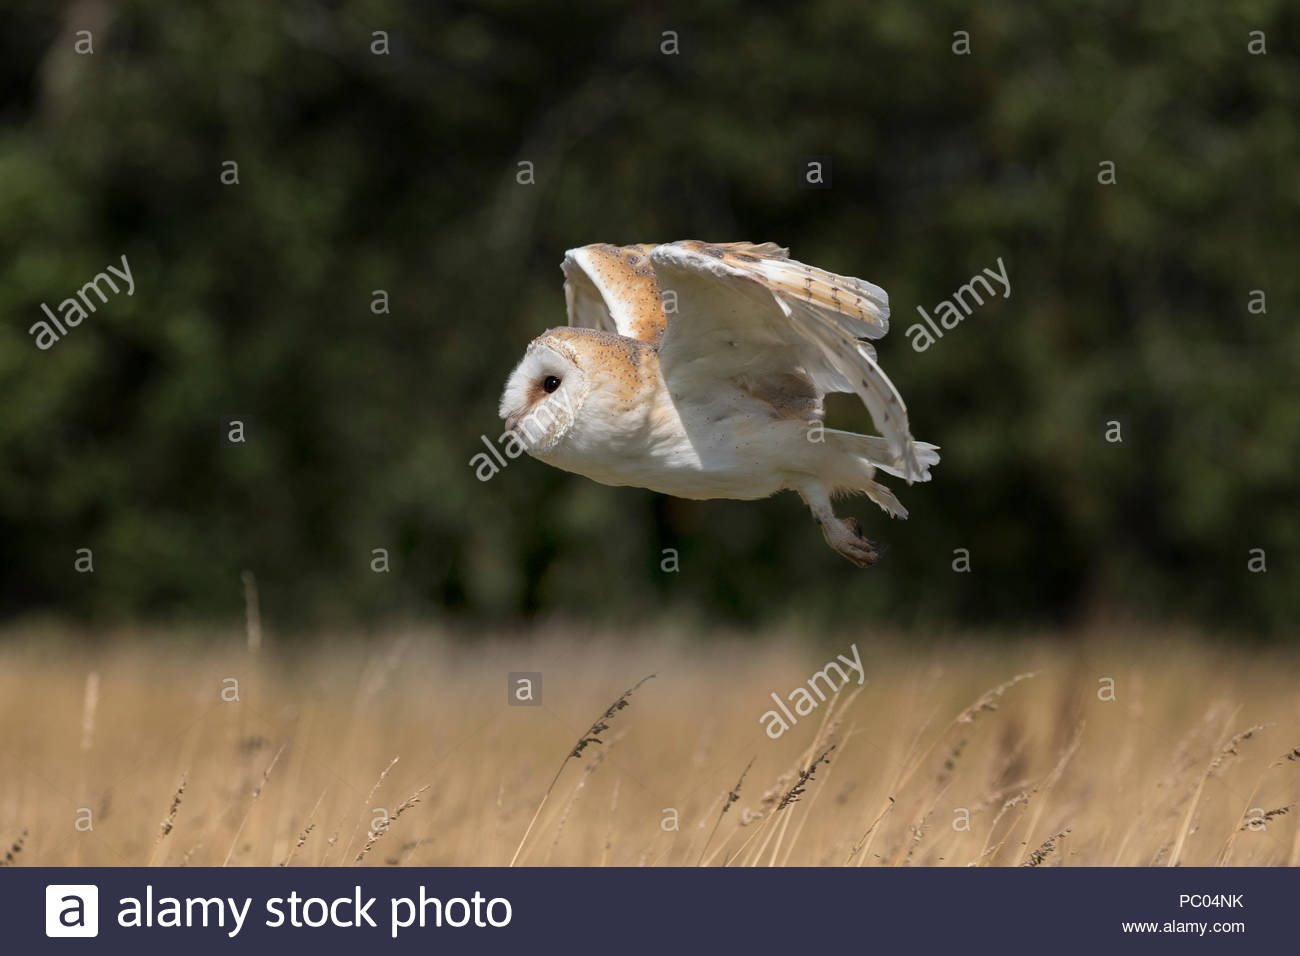 Barn owl (Tyto alba), captive, Cumbria, UK, - Stock Image